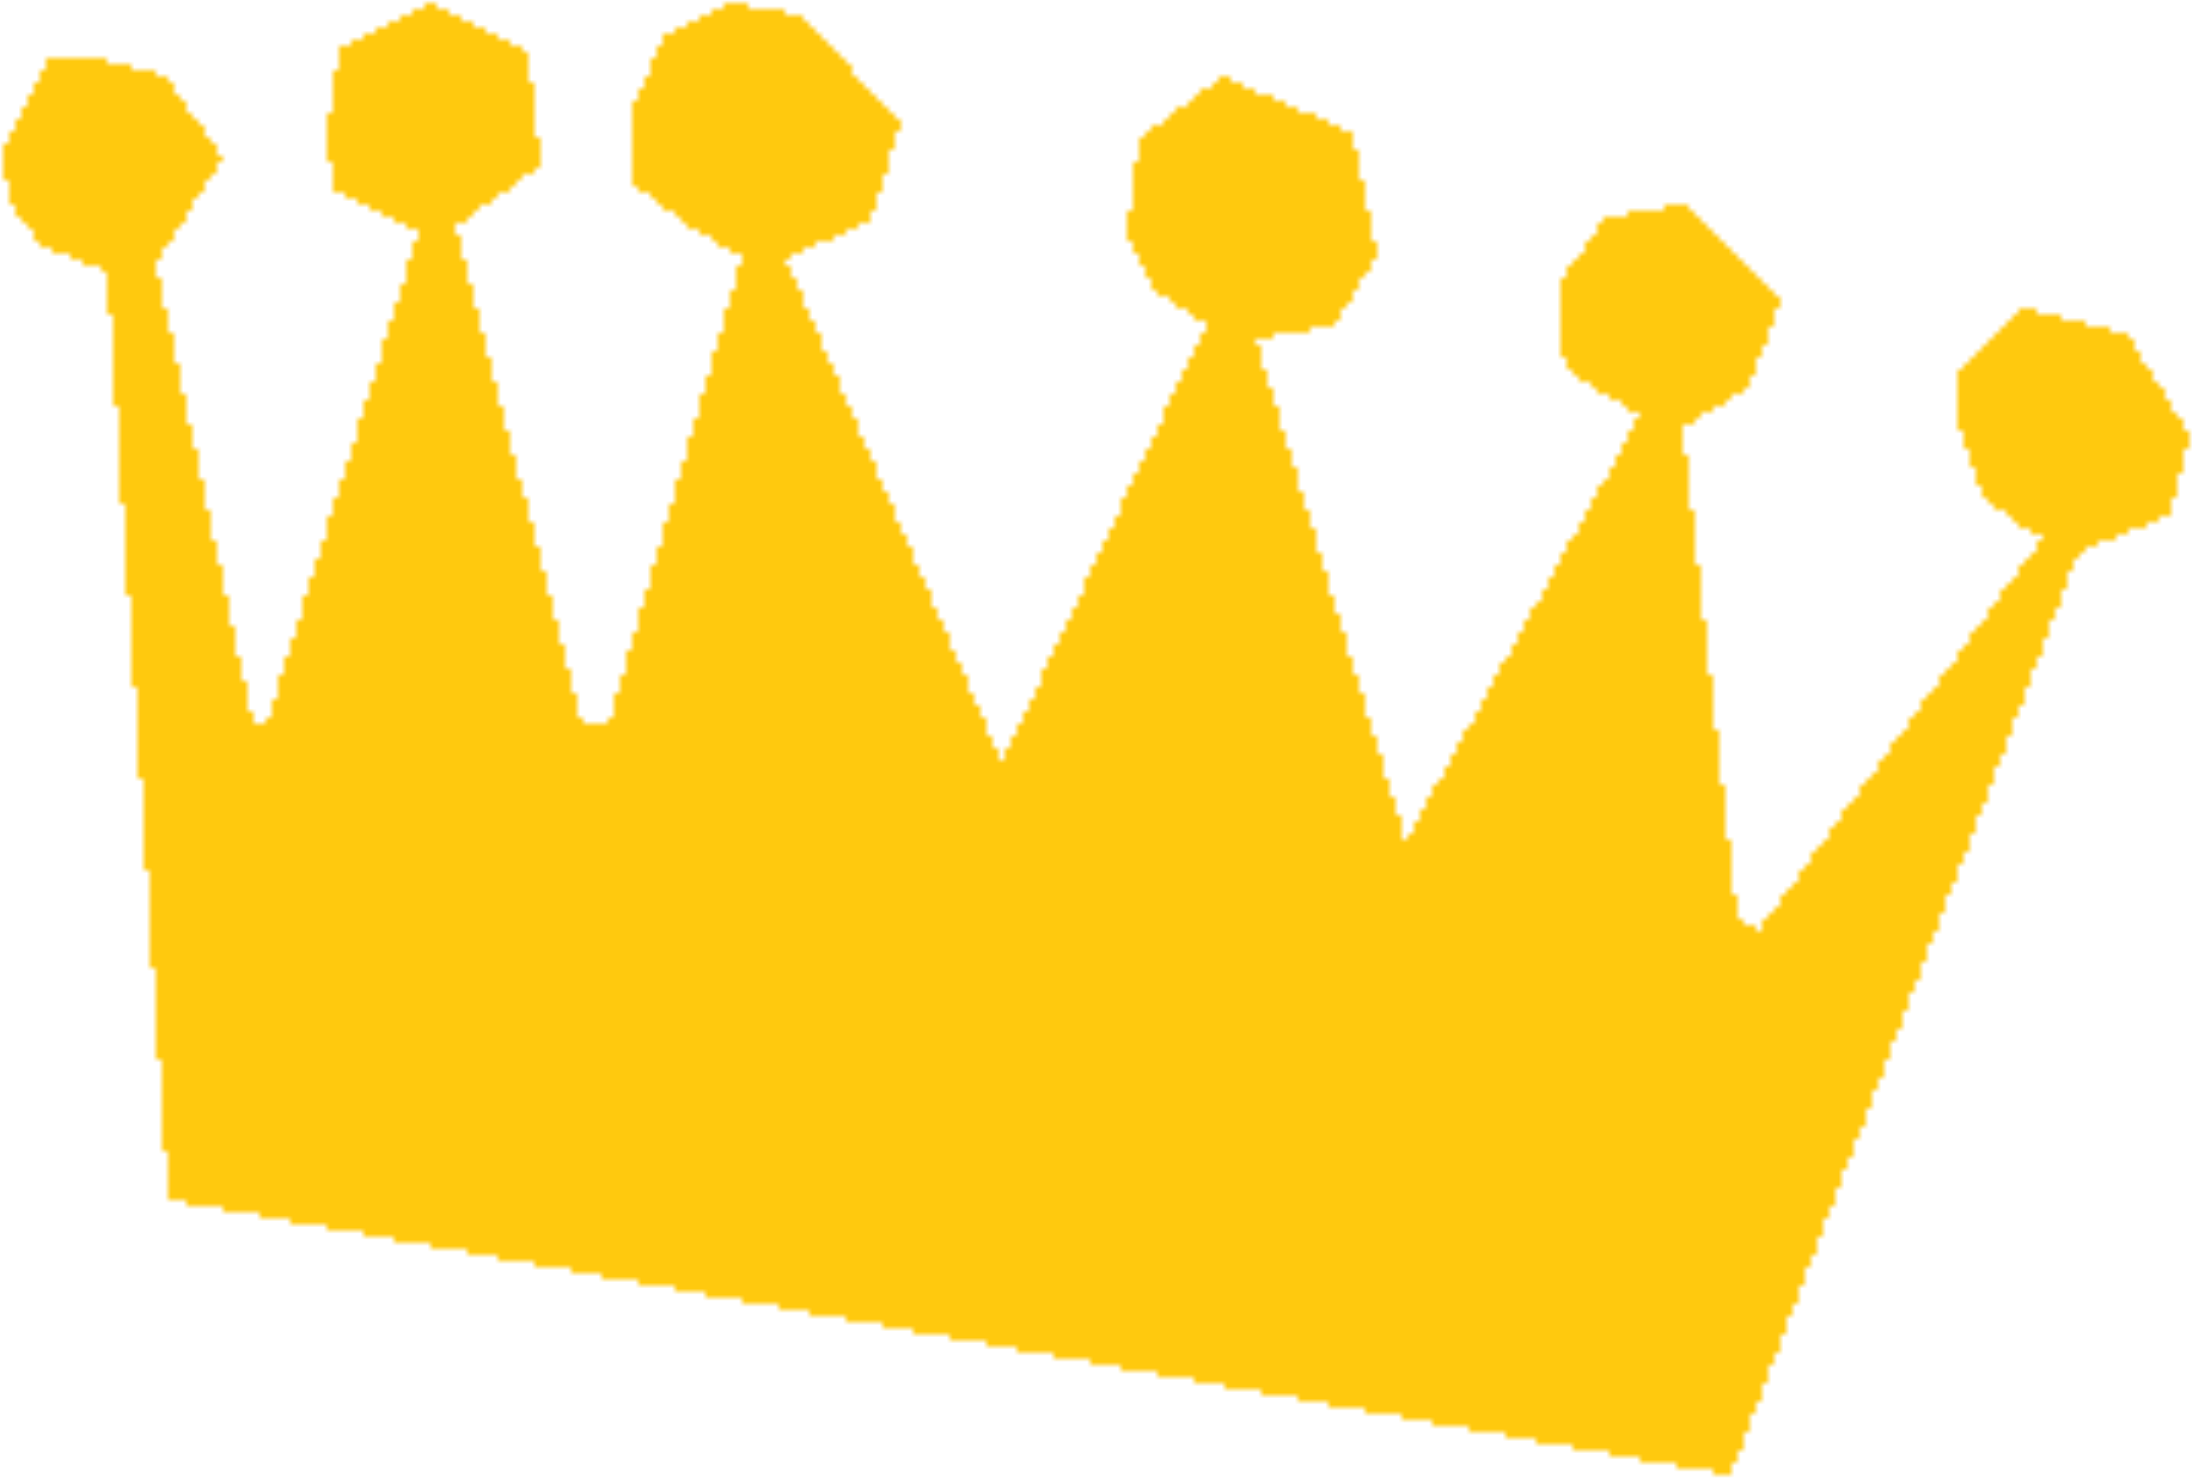 crown clipart png - photo #31